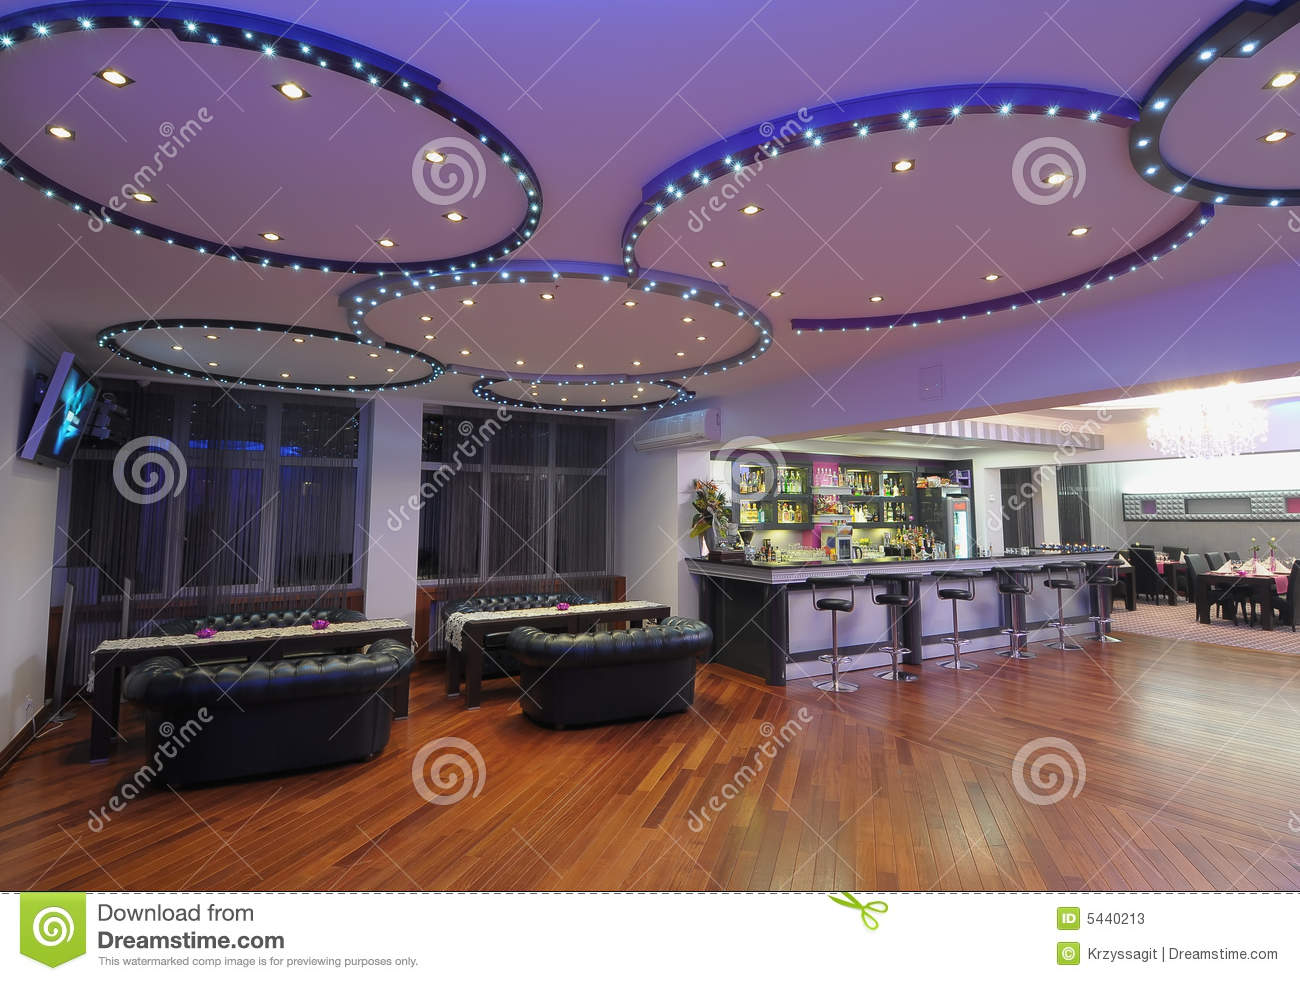 Hotel Interiors hotel interiors stock photos - image: 5440213